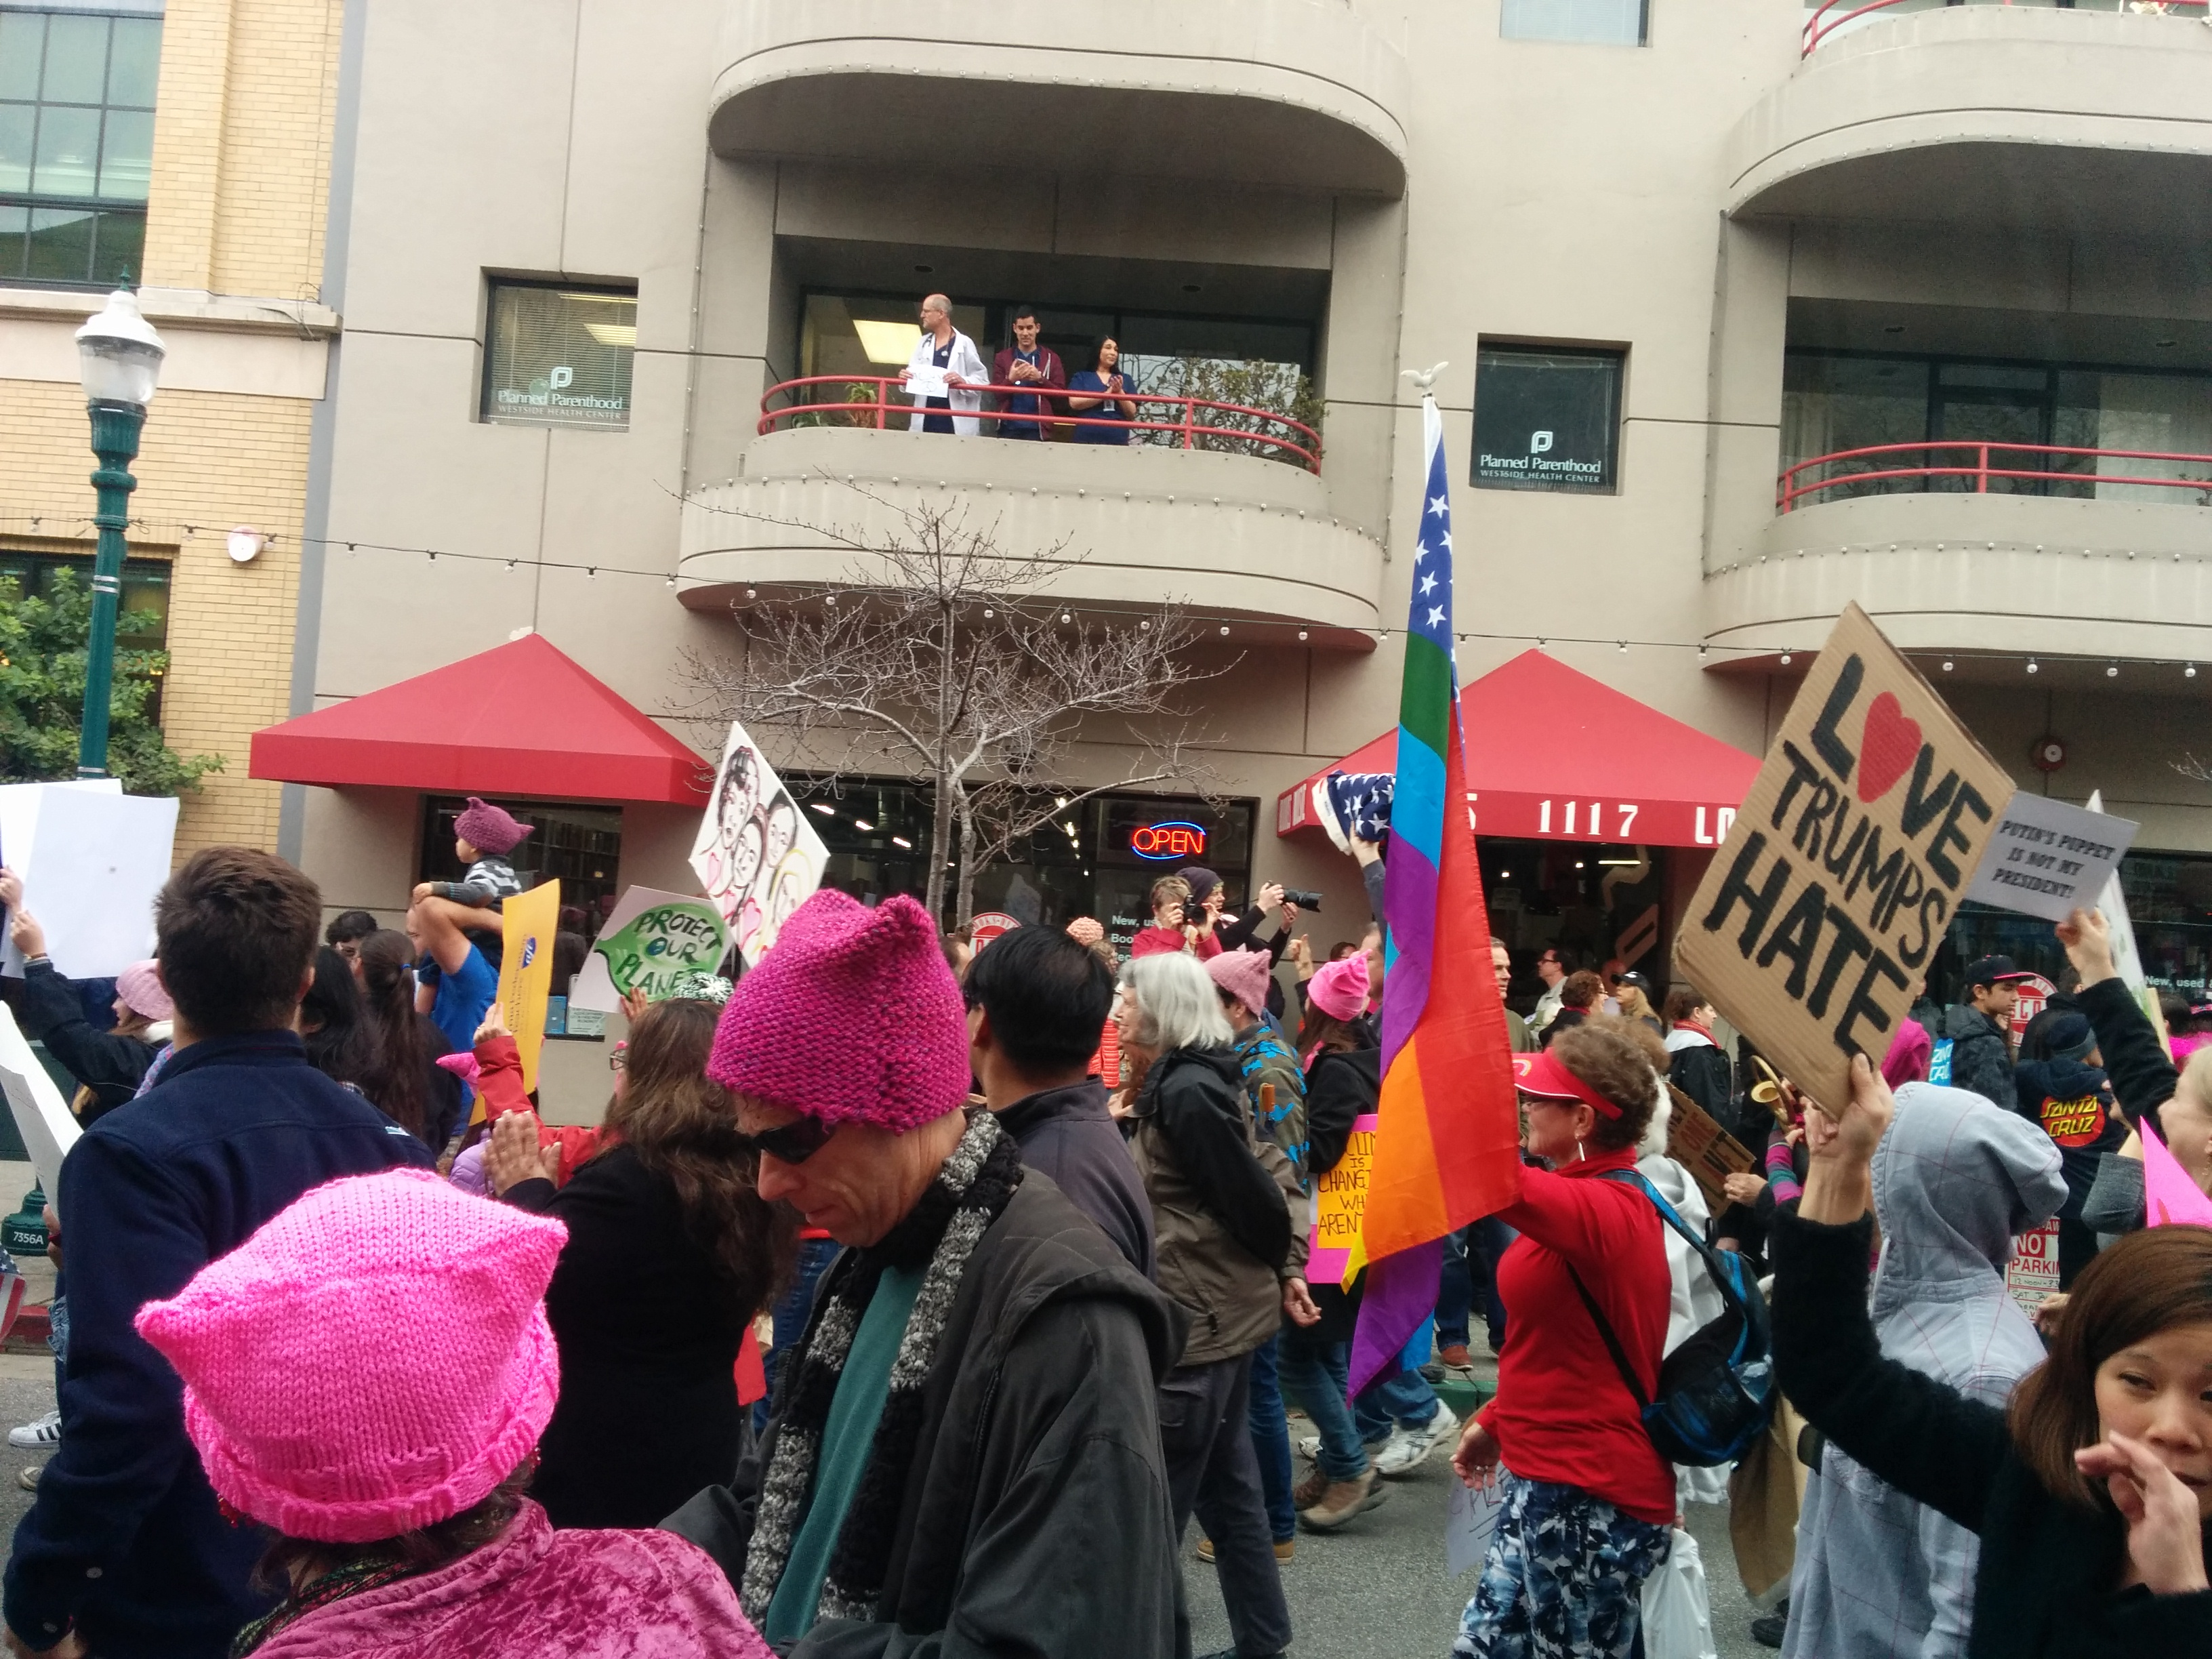 on Pacific Avenue, going by Planned Parenthood